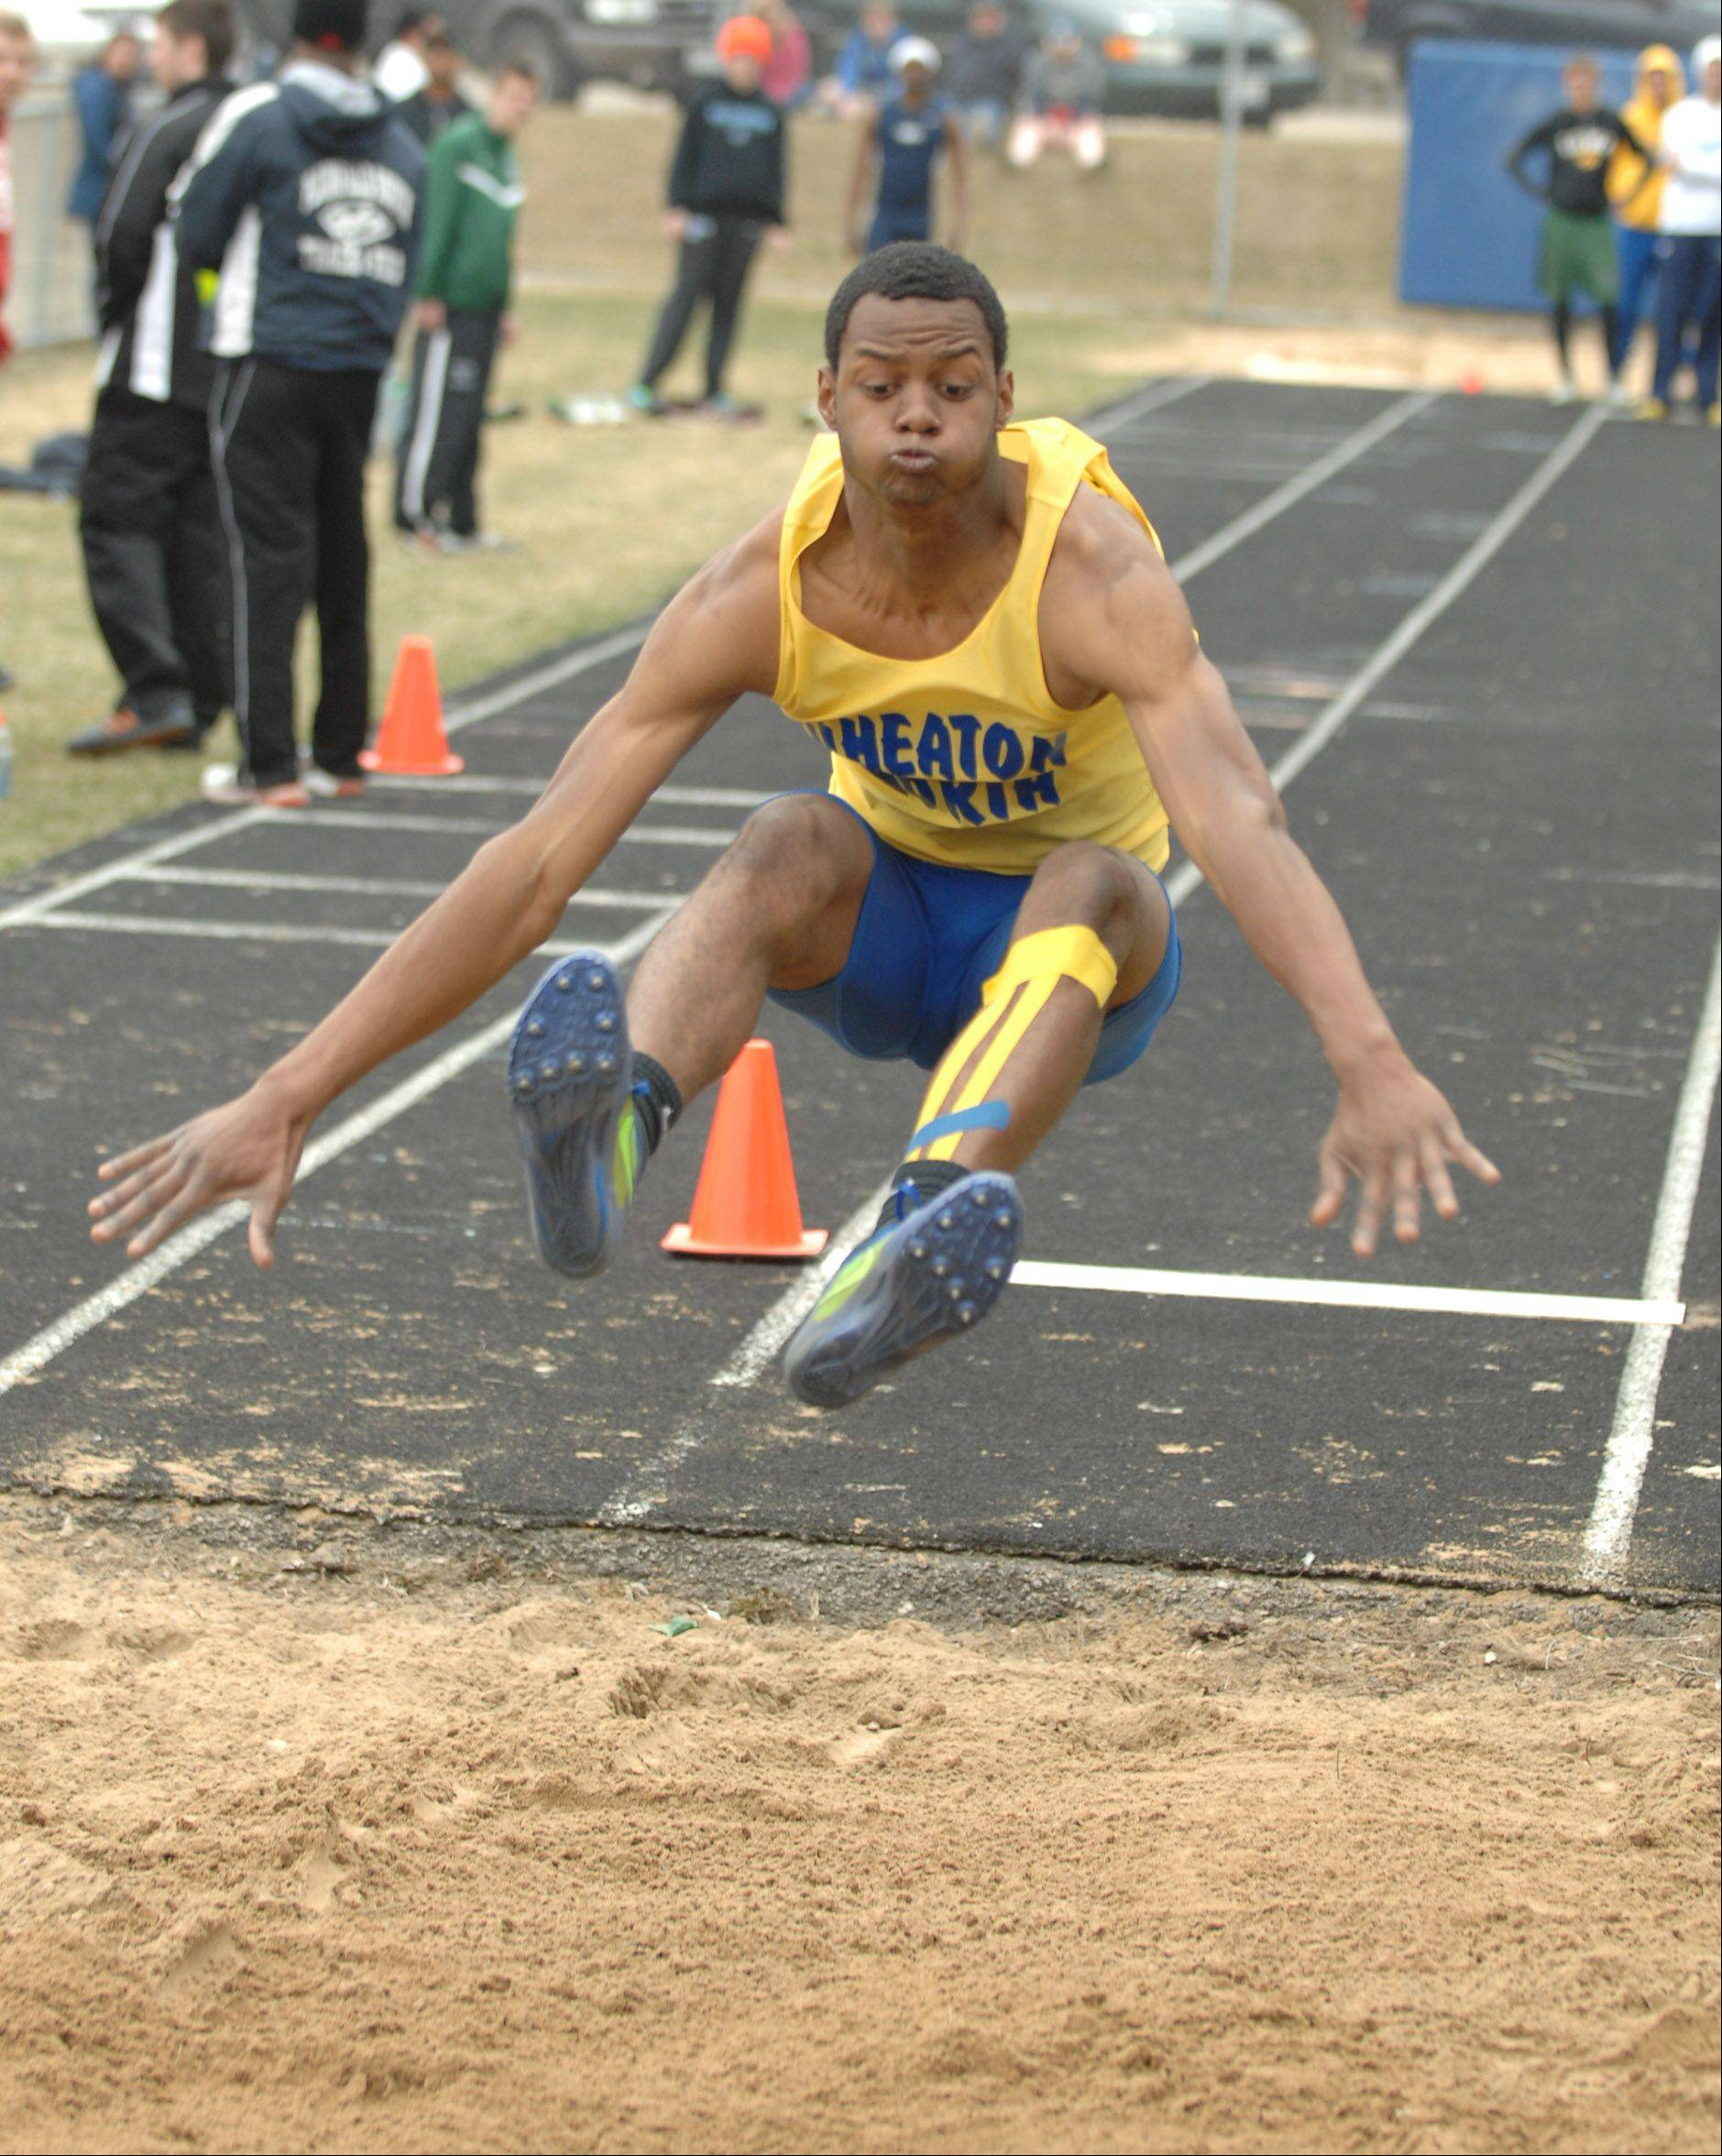 Zach Gordon of Wheaton Noth takes partin the long jump during the Wheaton North Best 4 boys track invitational Saturday.